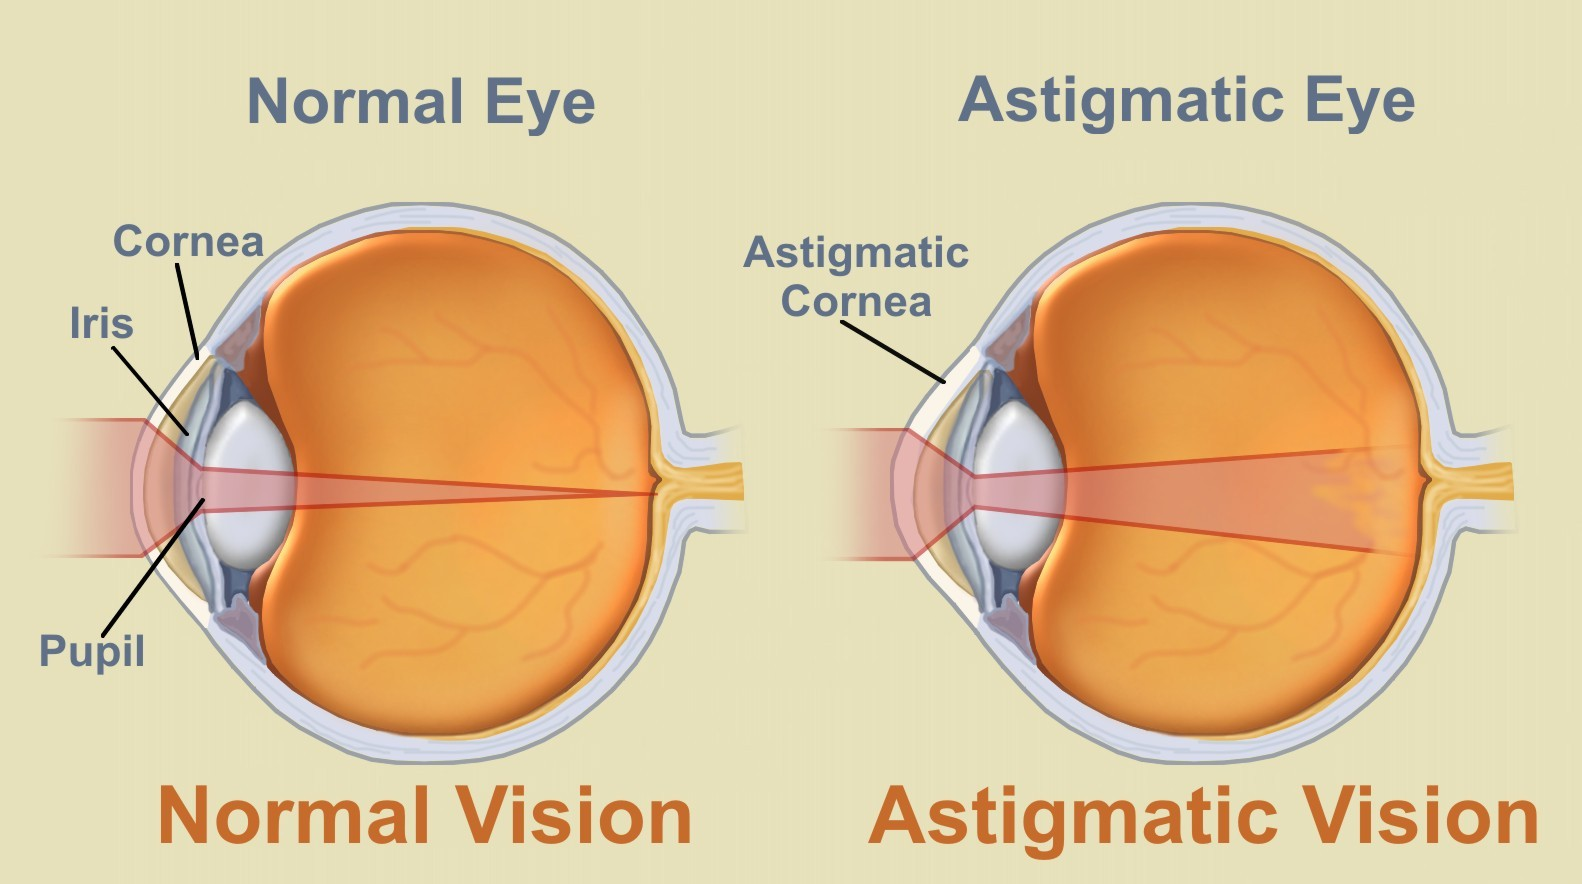 Can Astigmatism Be Corrected Naturally